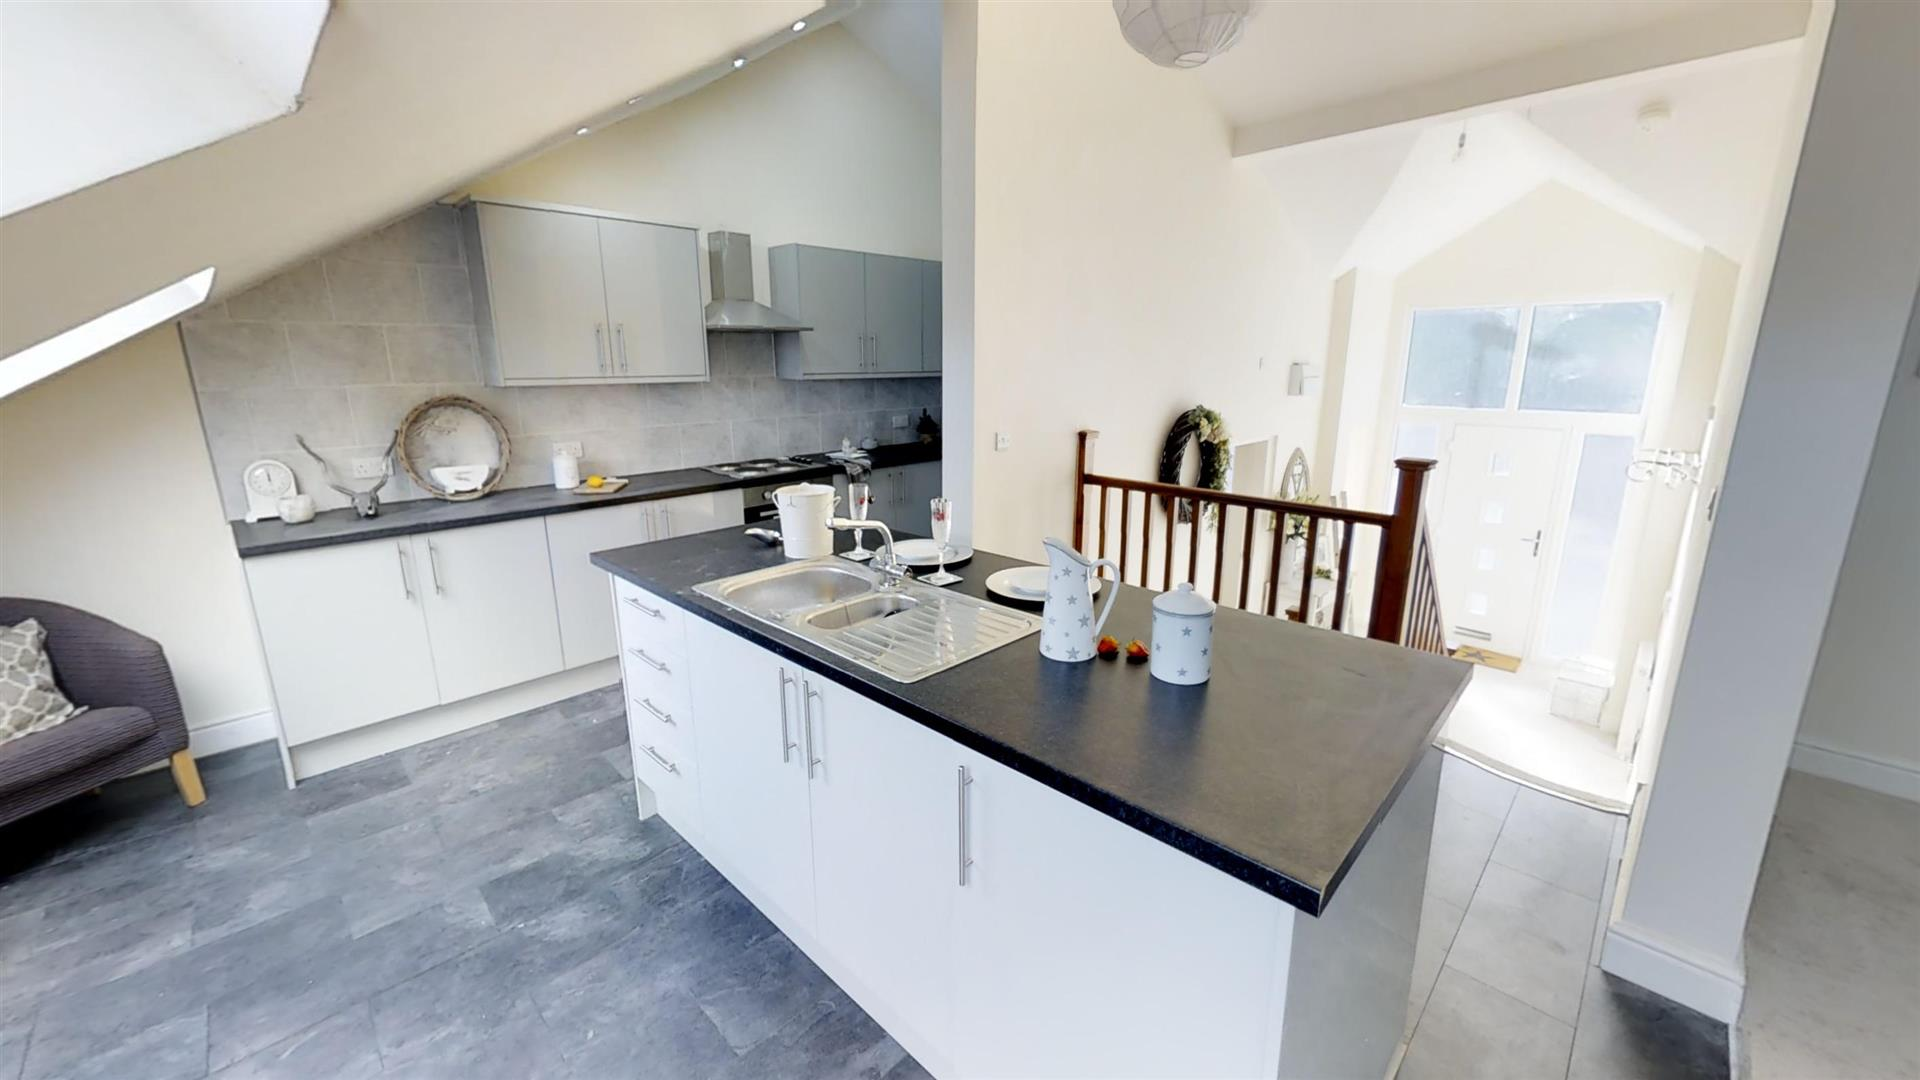 Kitchen Dining Room Mountside Gardens Gateshead NE11